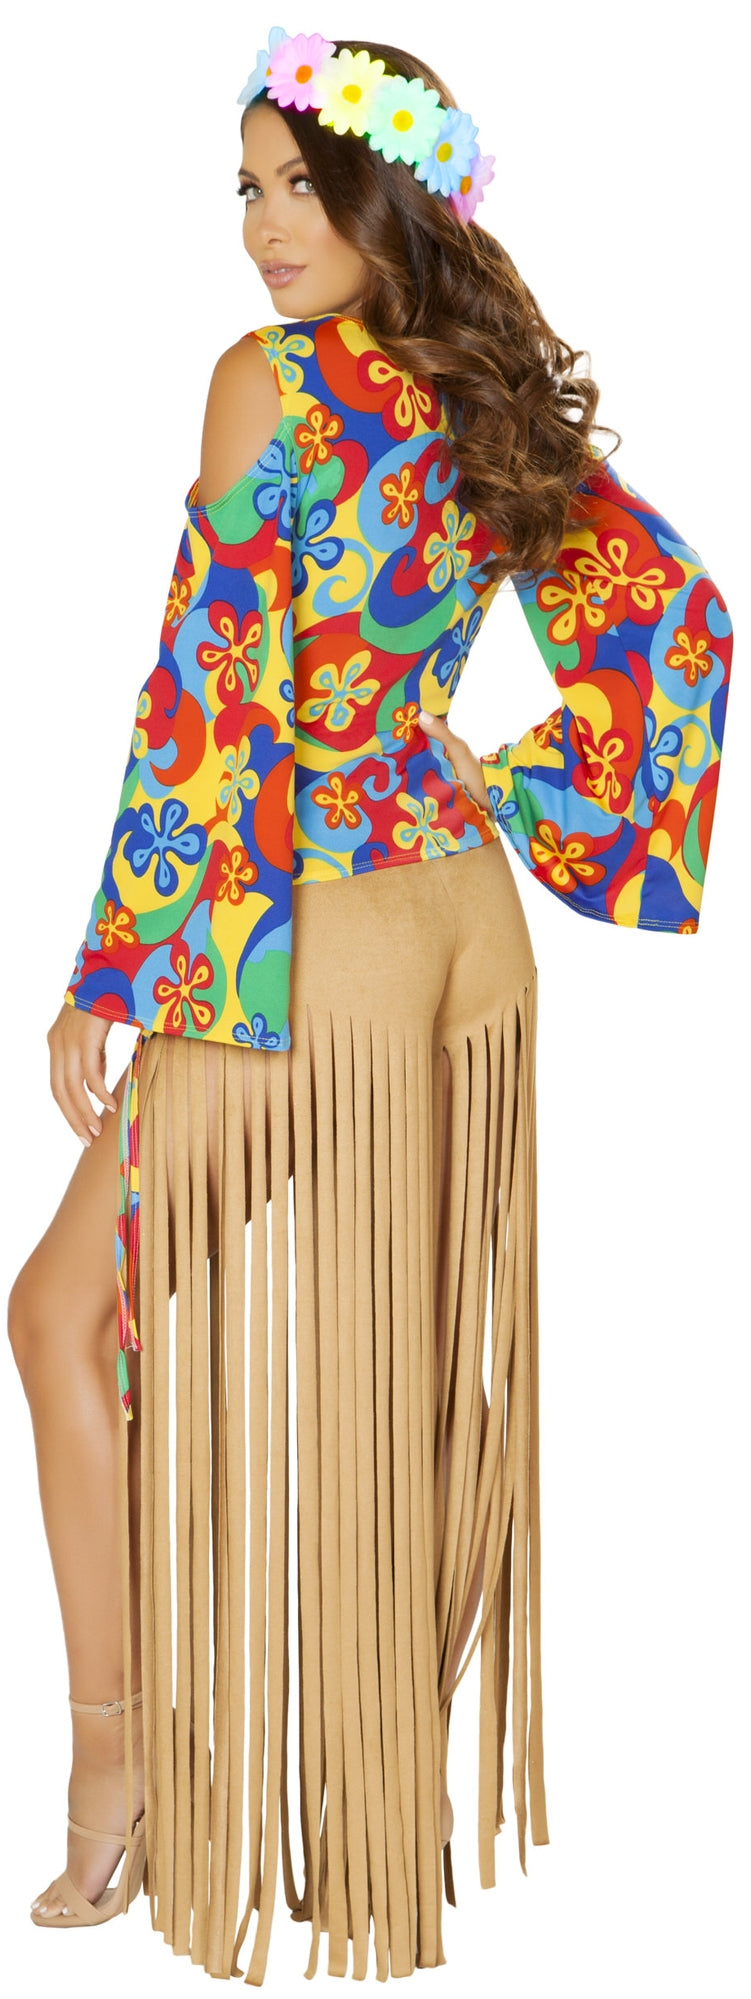 RM-4881 Two piece hippie costume